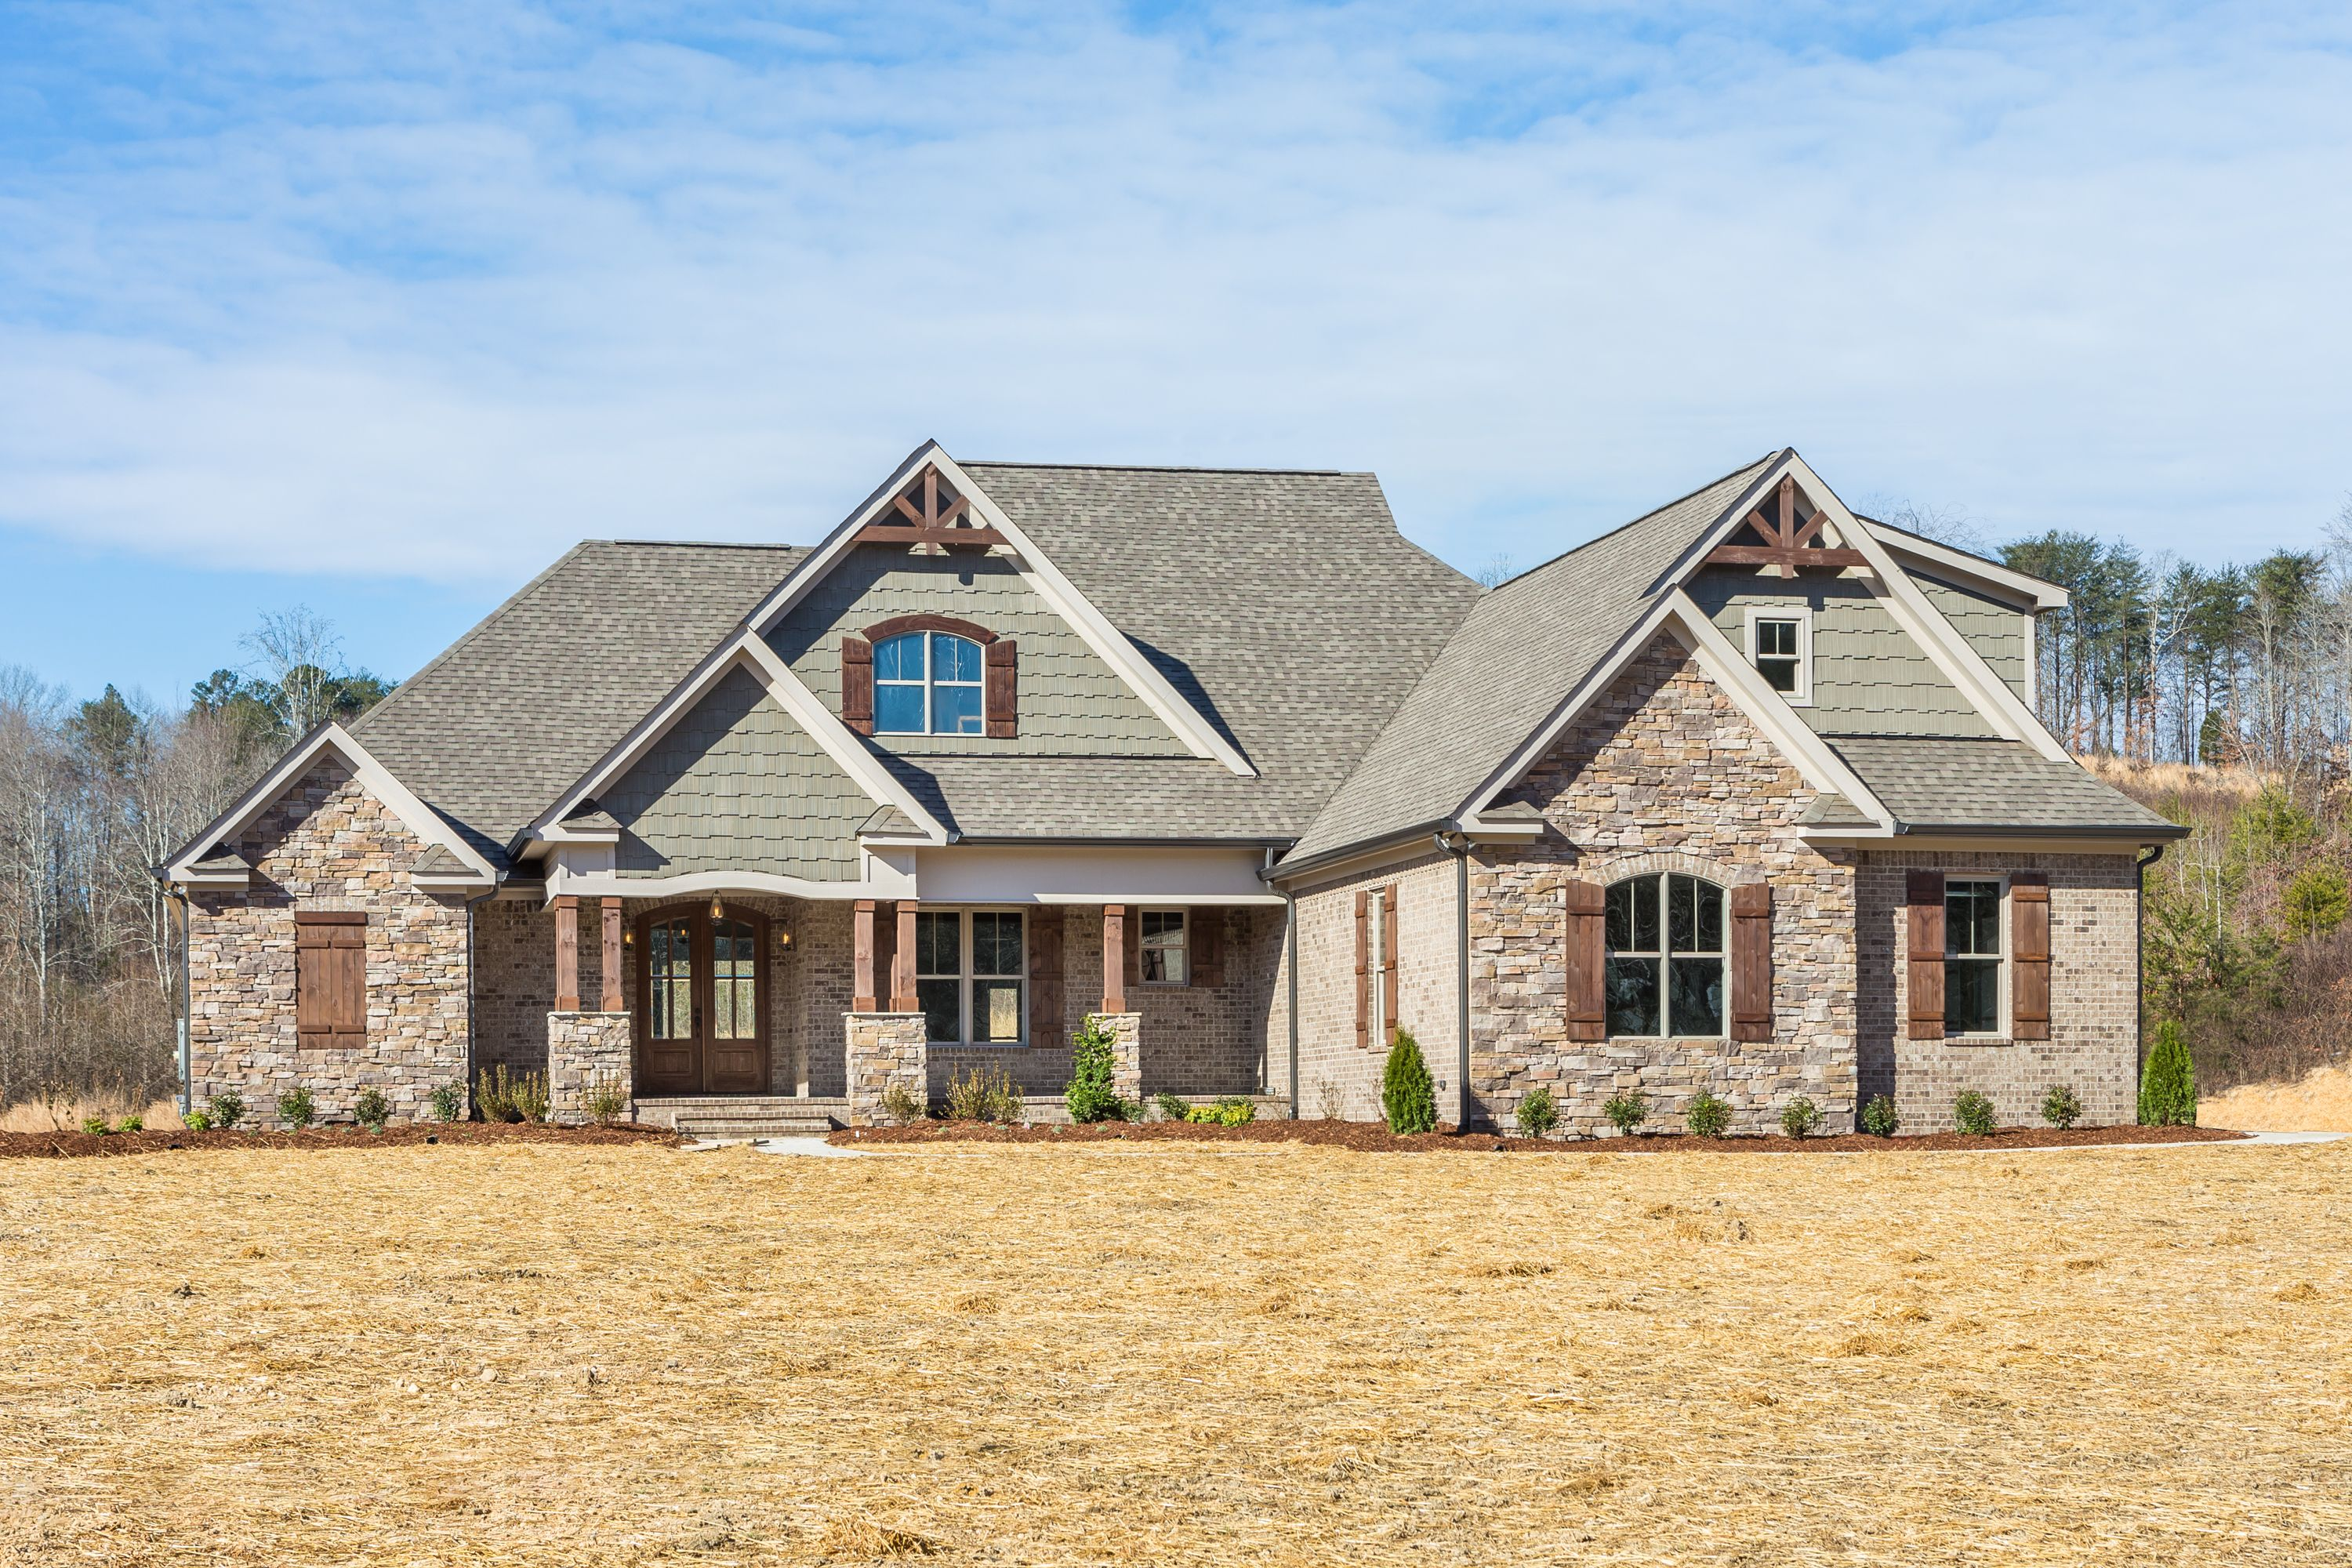 Wisteria floor plan constructed for a custom build in Soddy Daisy